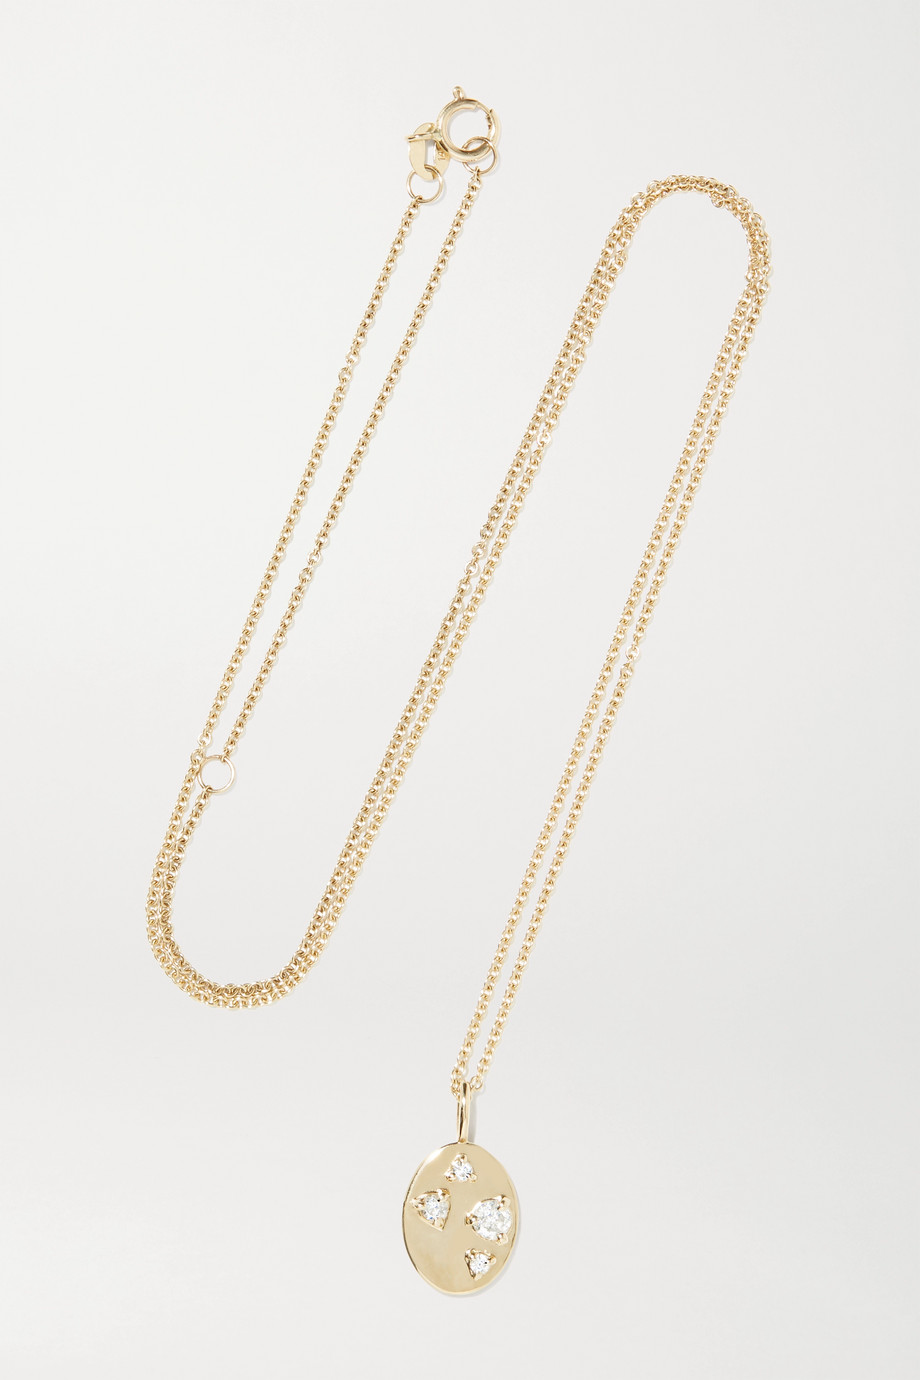 STONE AND STRAND 14-karat gold diamond necklace